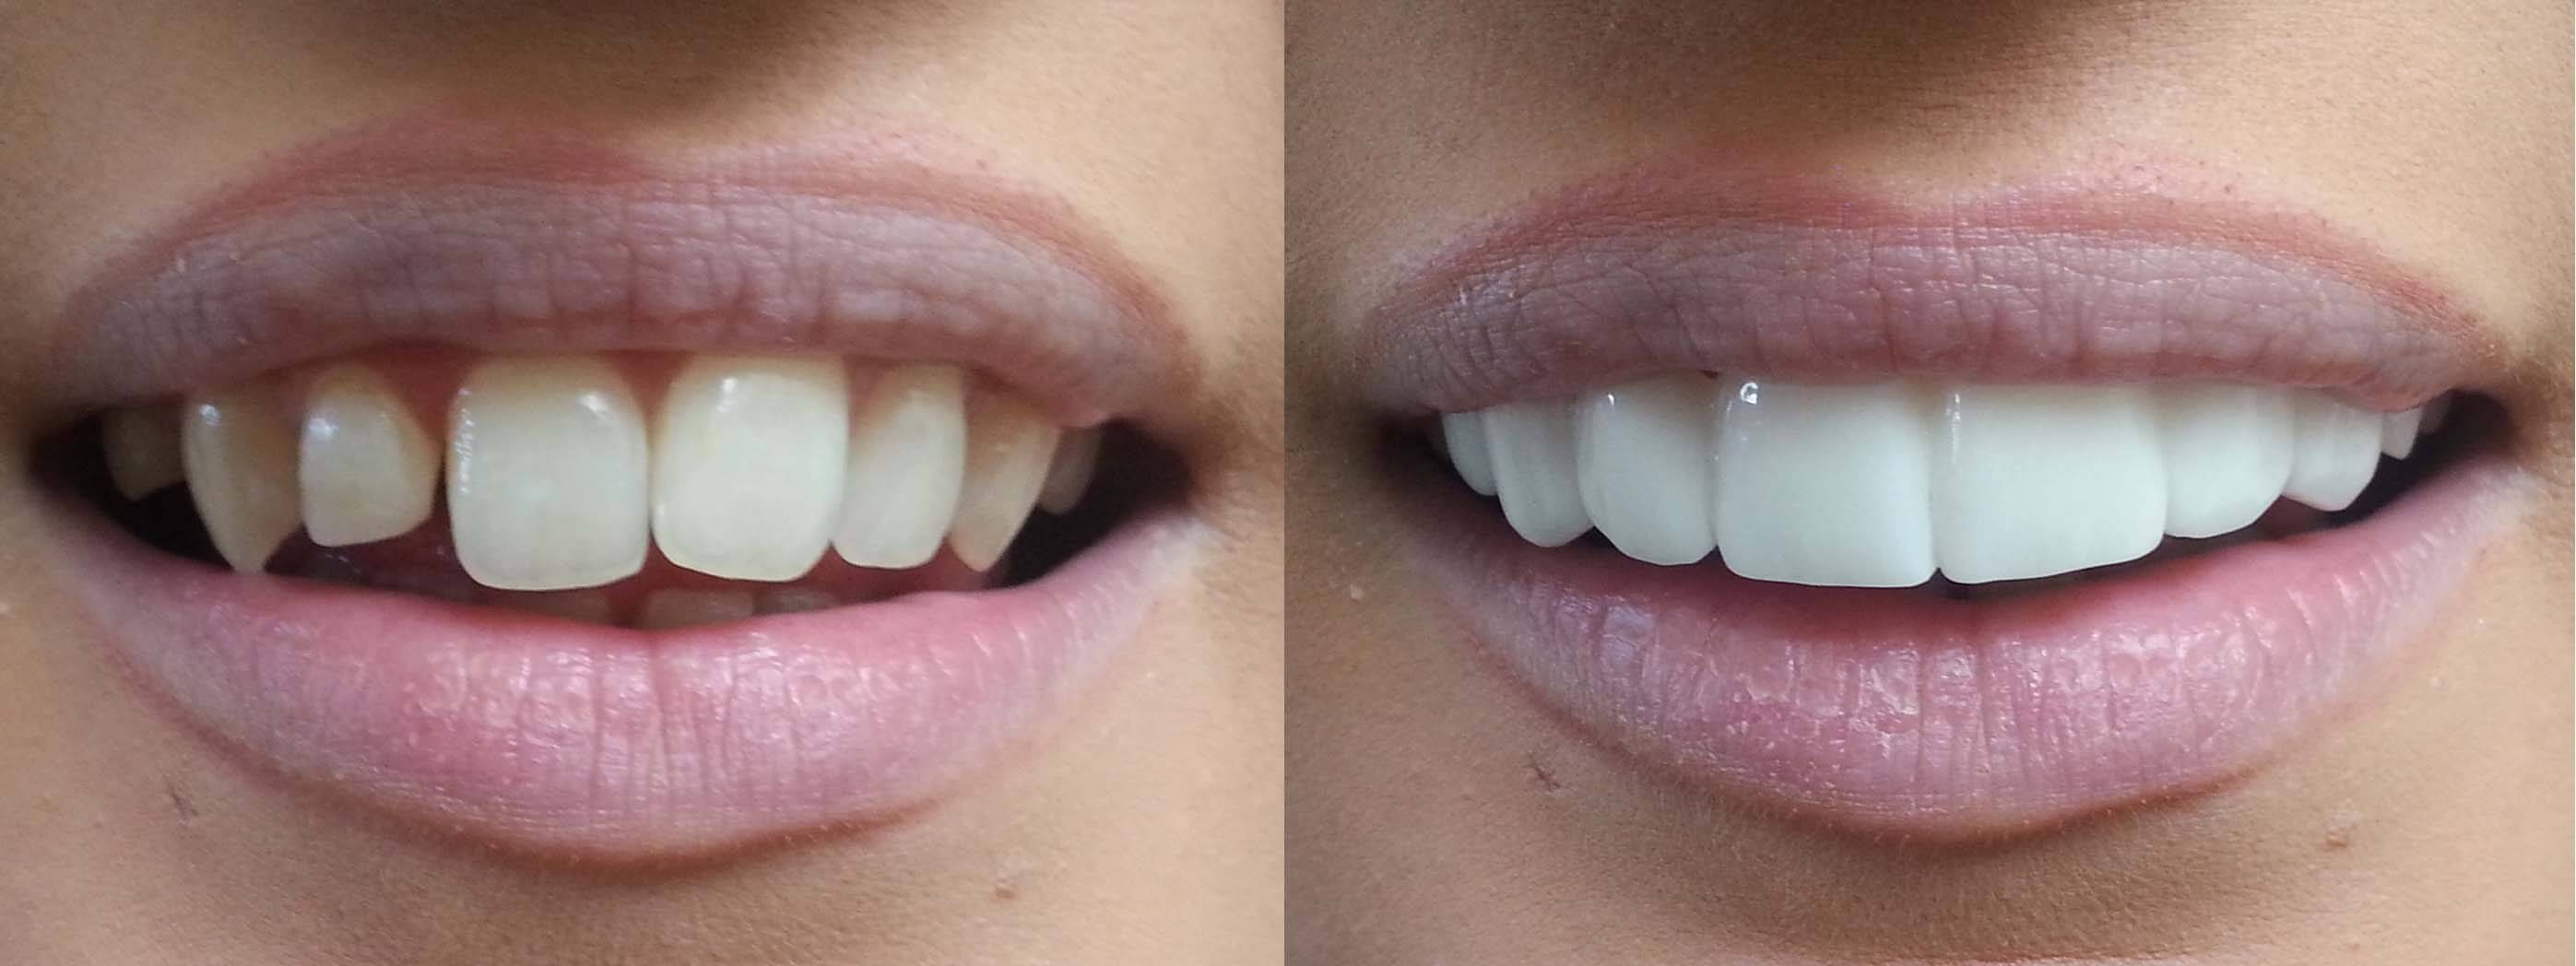 Press on veneers the dental guide clip on veneers bleach shade before afters solutioingenieria Image collections